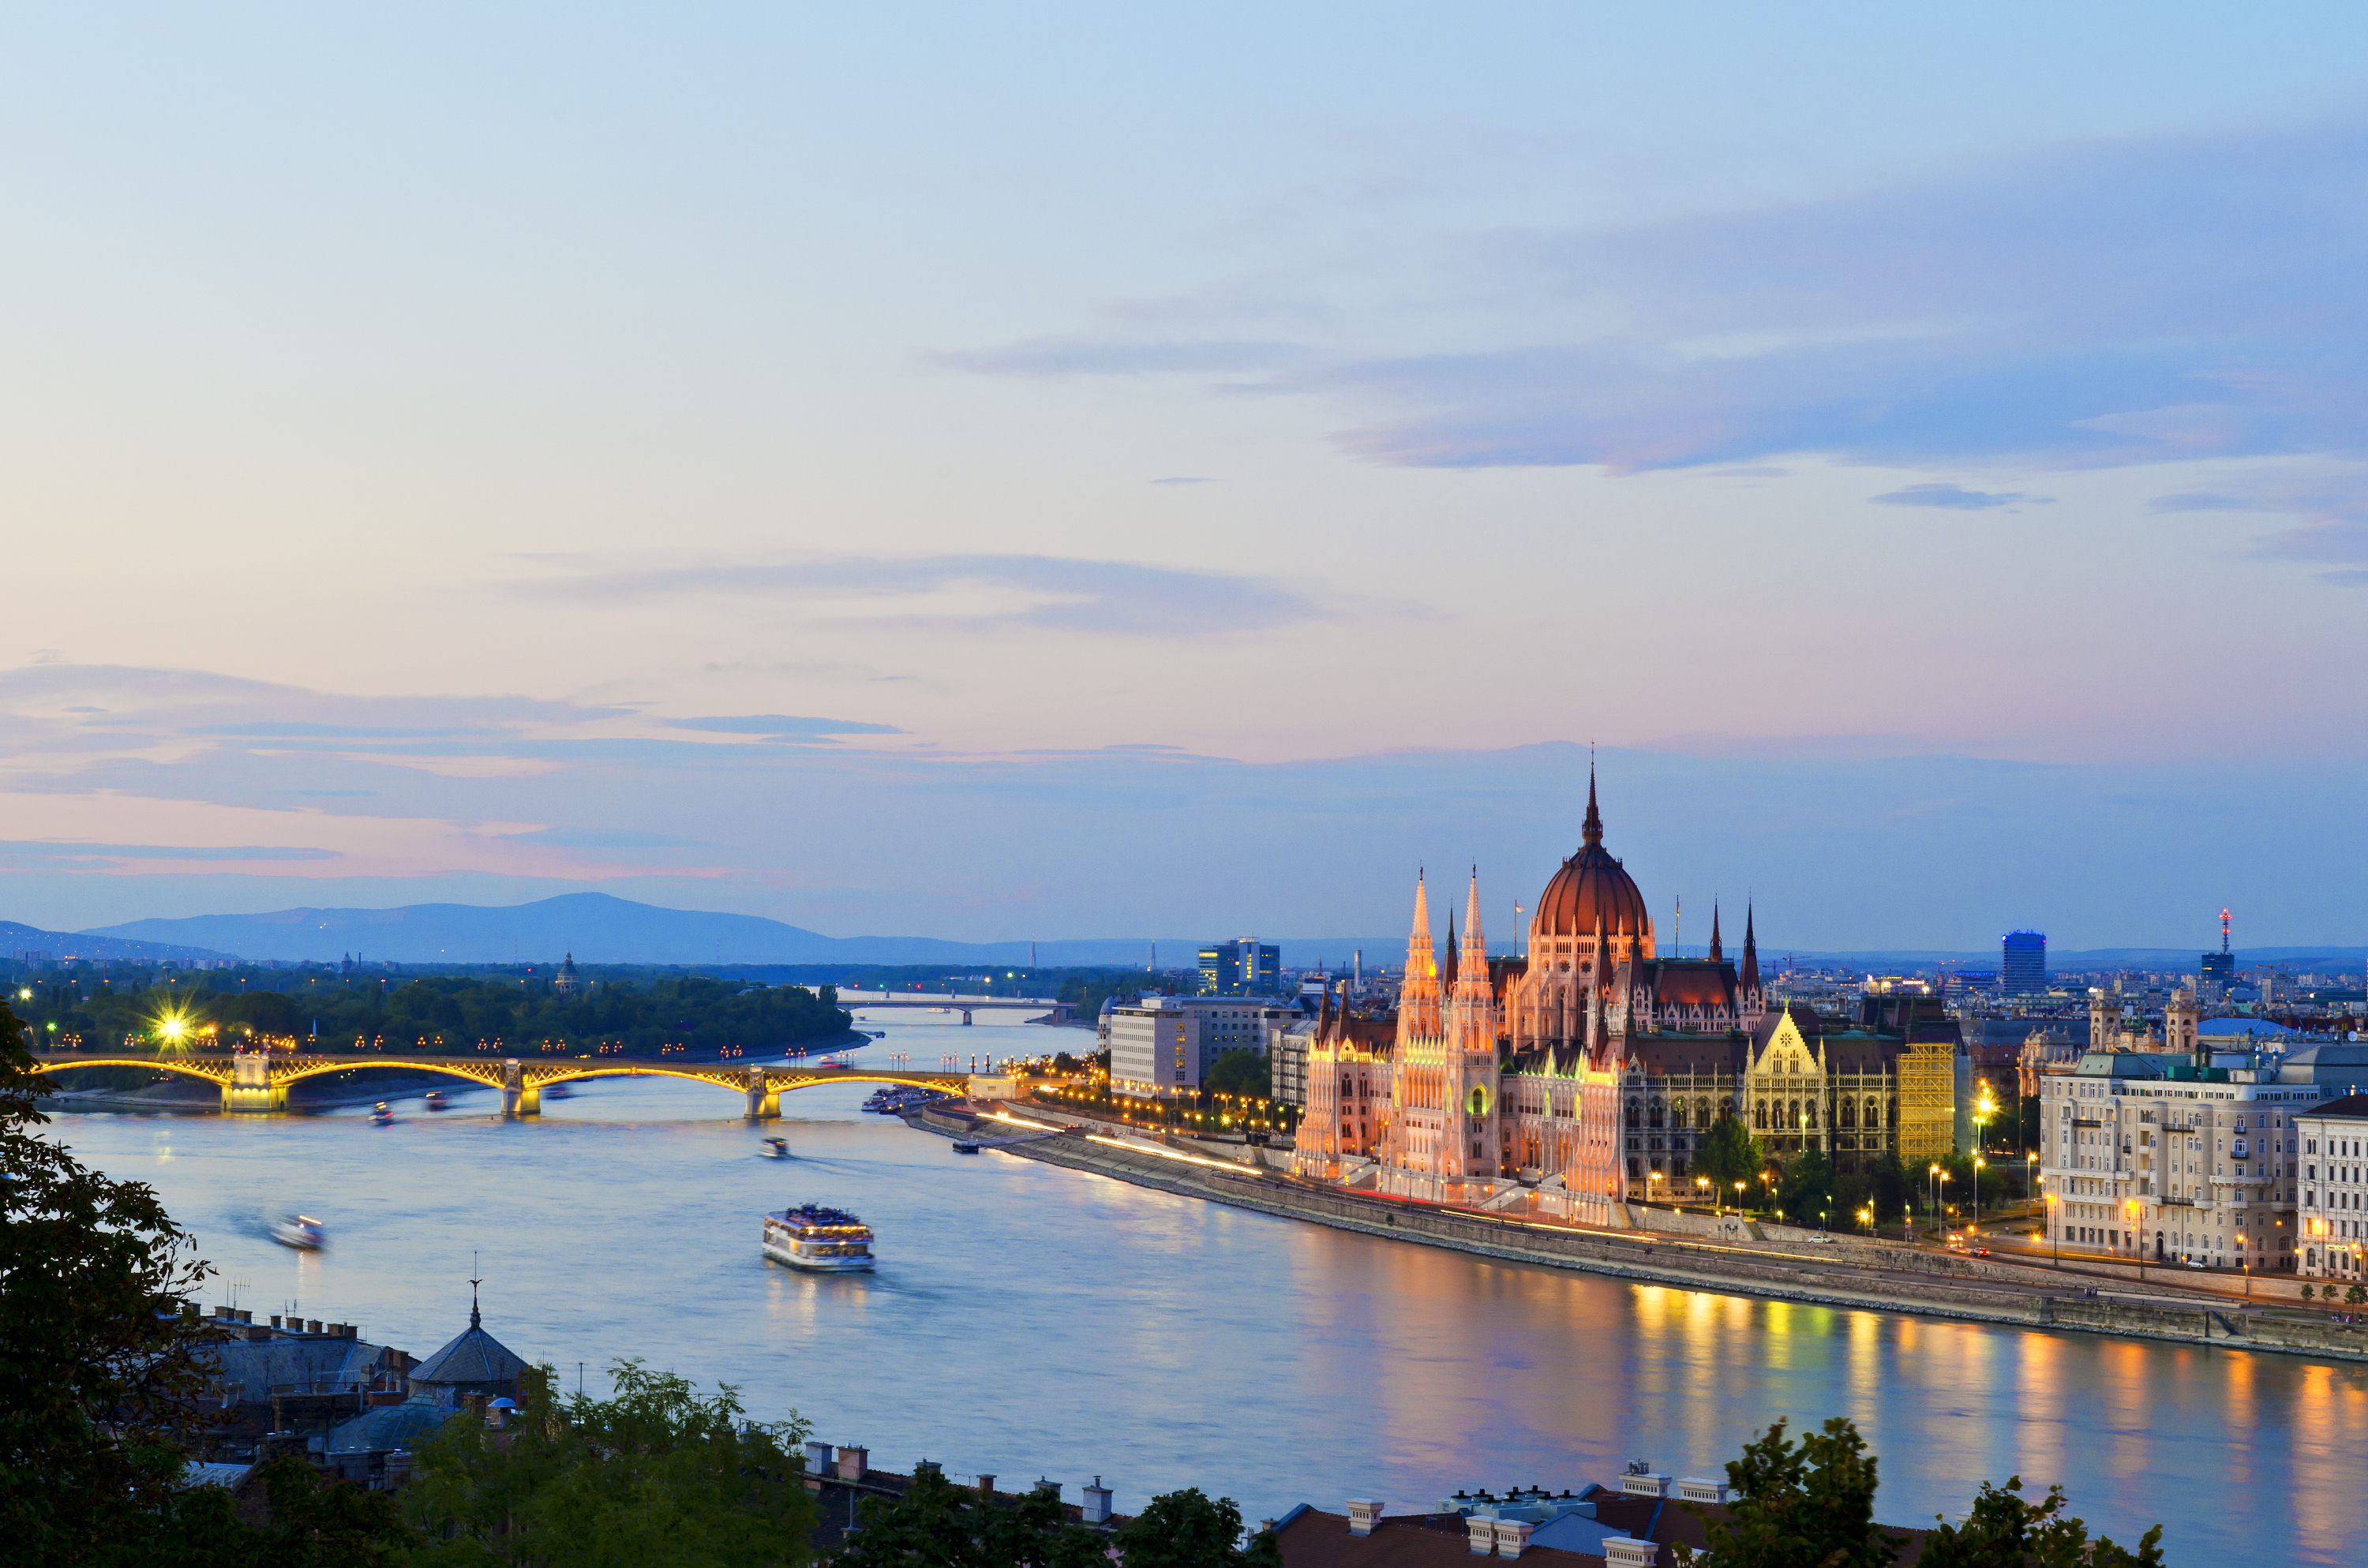 Hungarian Parliament building and Danube